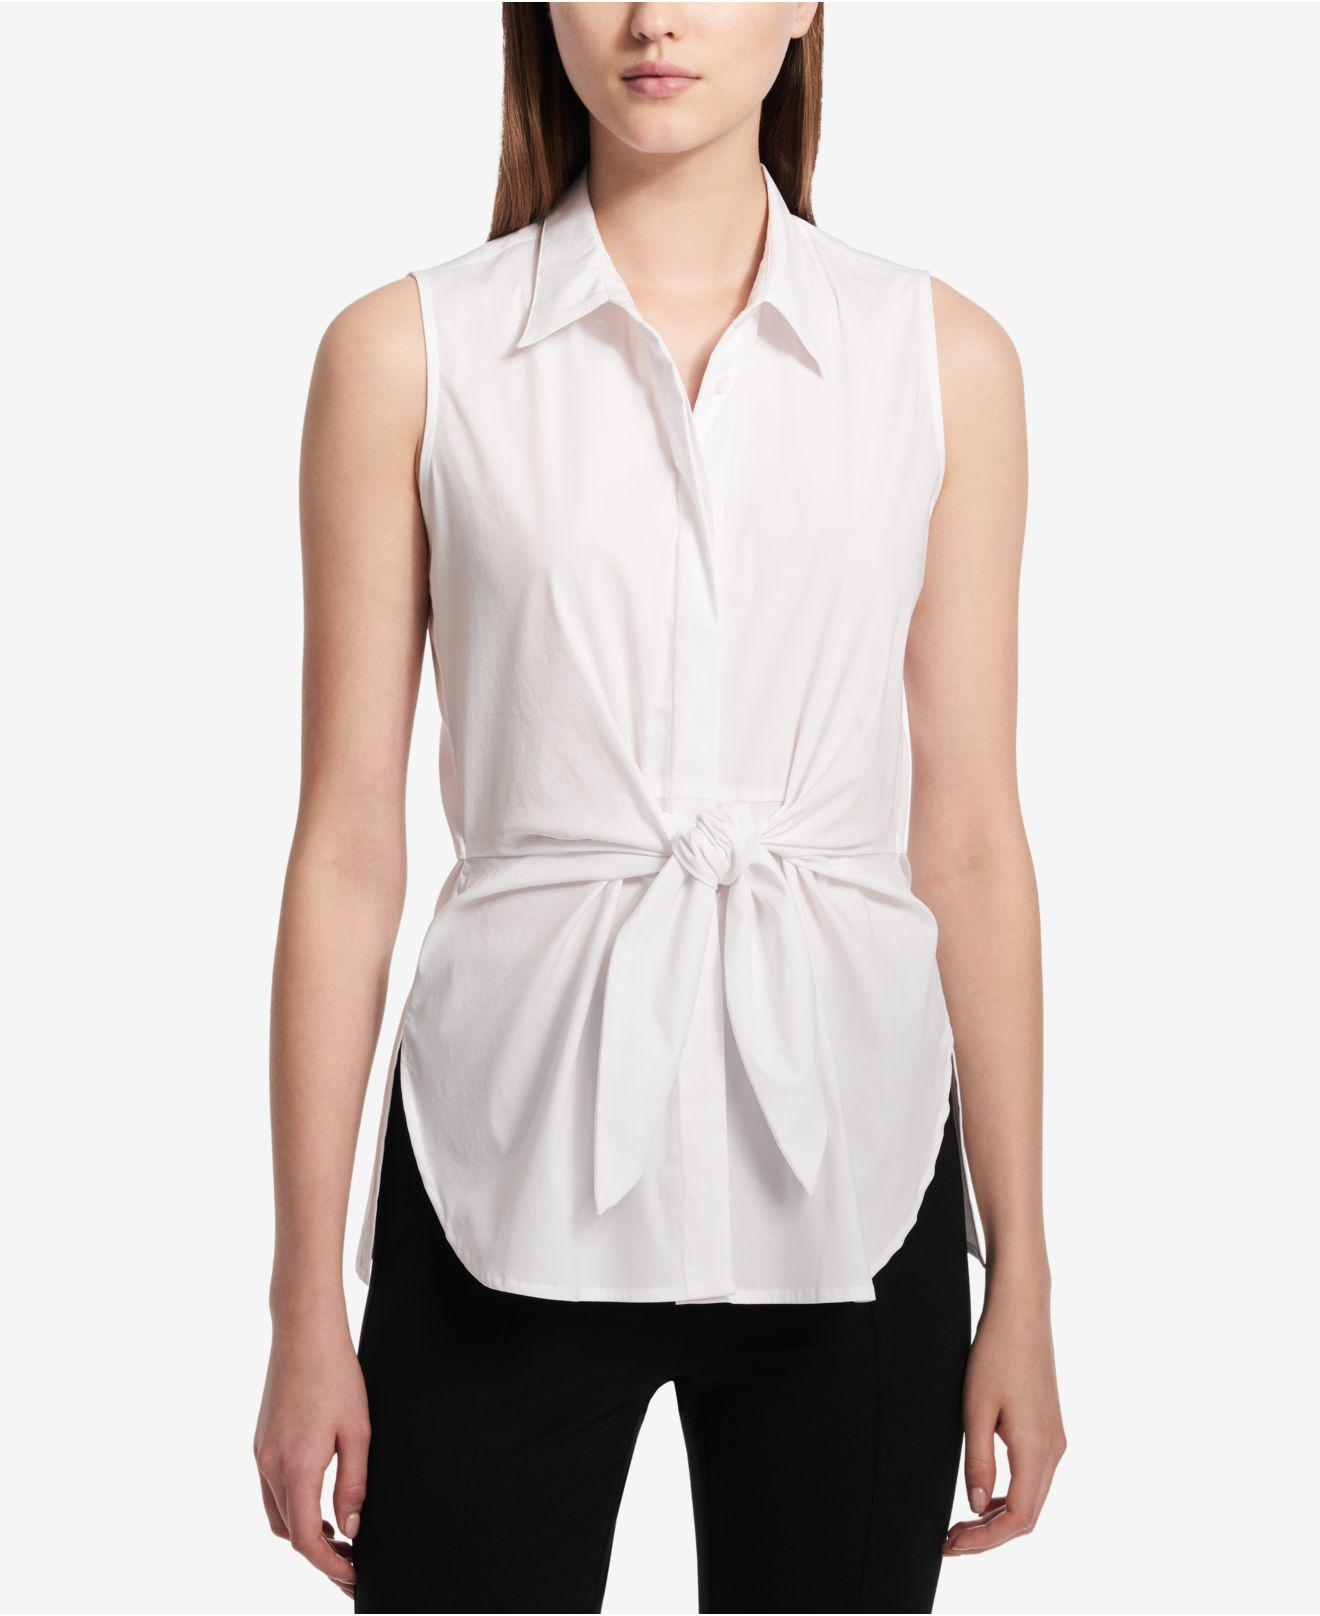 2a607743417215 Lyst - Calvin Klein Tie-front Sleeveless Blouse in White